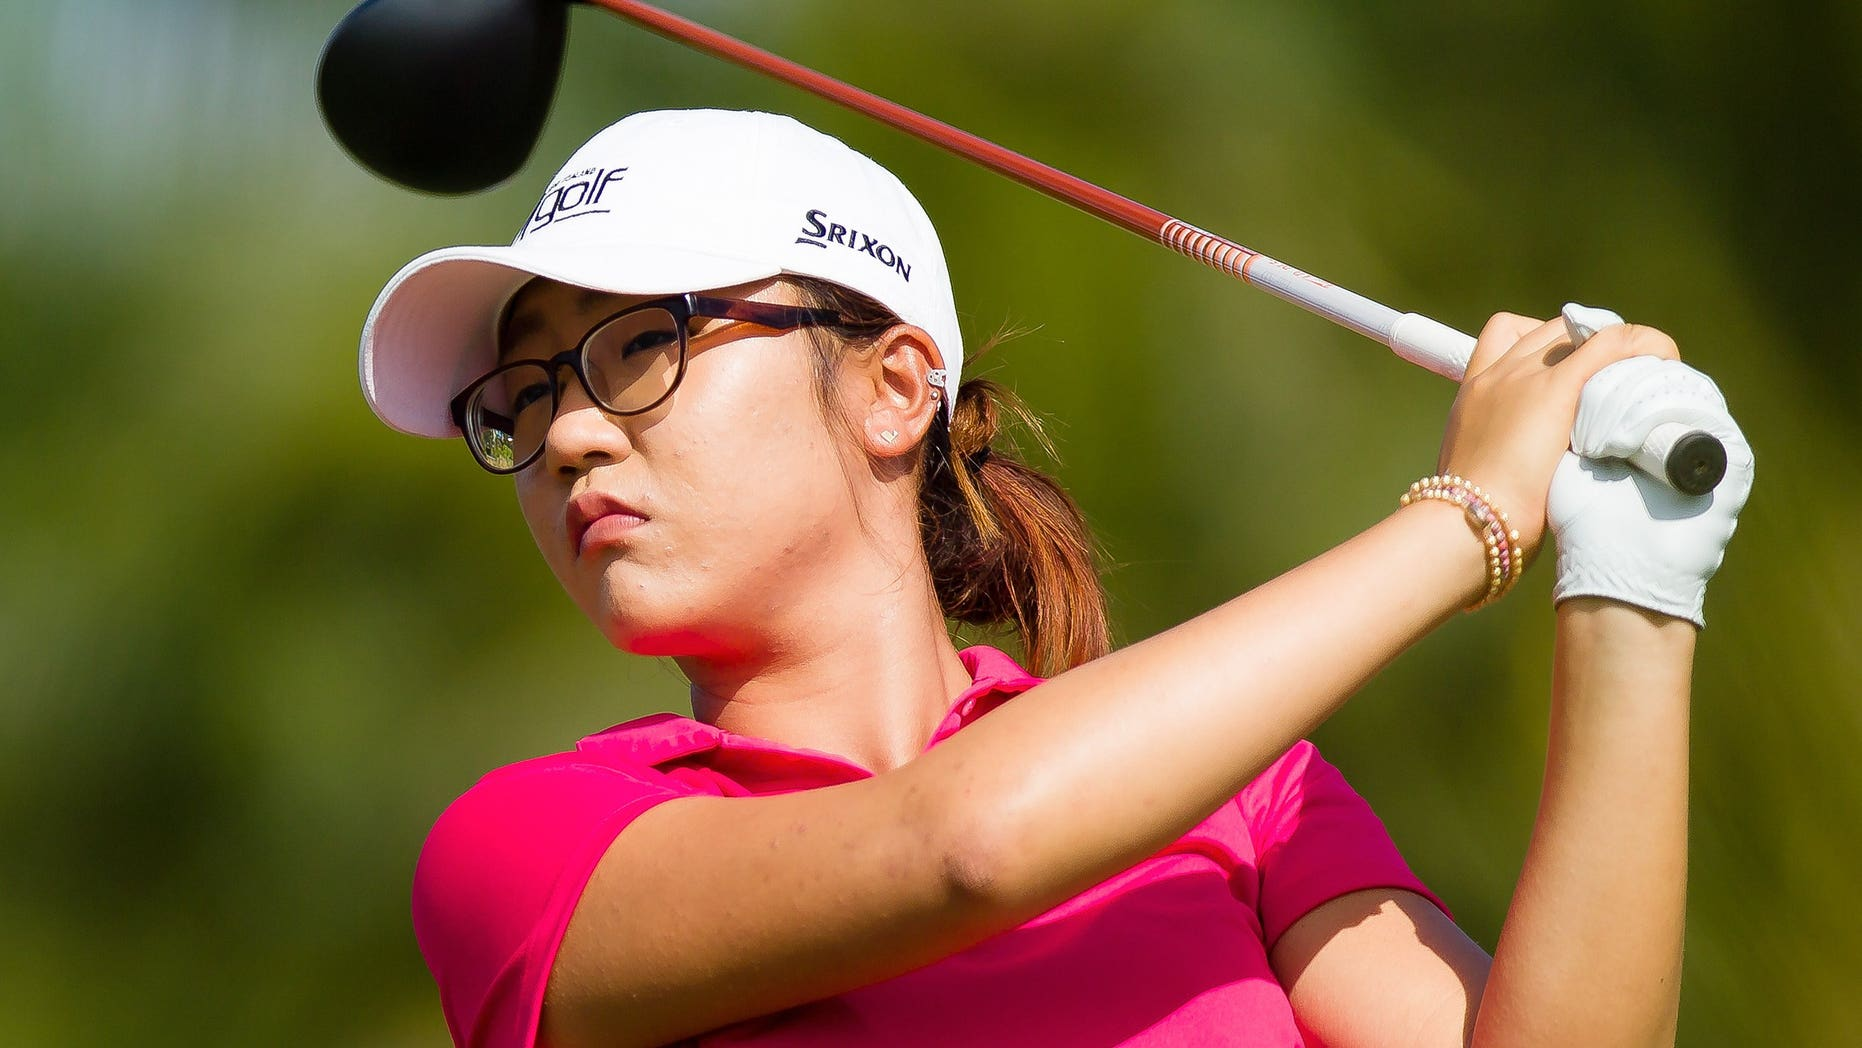 In this photo taken on Tuesday, Nov. 19, 2013, Lydia Ko, of New Zealand, hits a tee shot during the pro-am of the LPGA Titleholders golf tournament at the Tiburon Golf Club in Naples, Fla. (AP Photo/Naples Daily News, David Albers)  FORT MYERS OUT, TV OUT, MAGS OUT